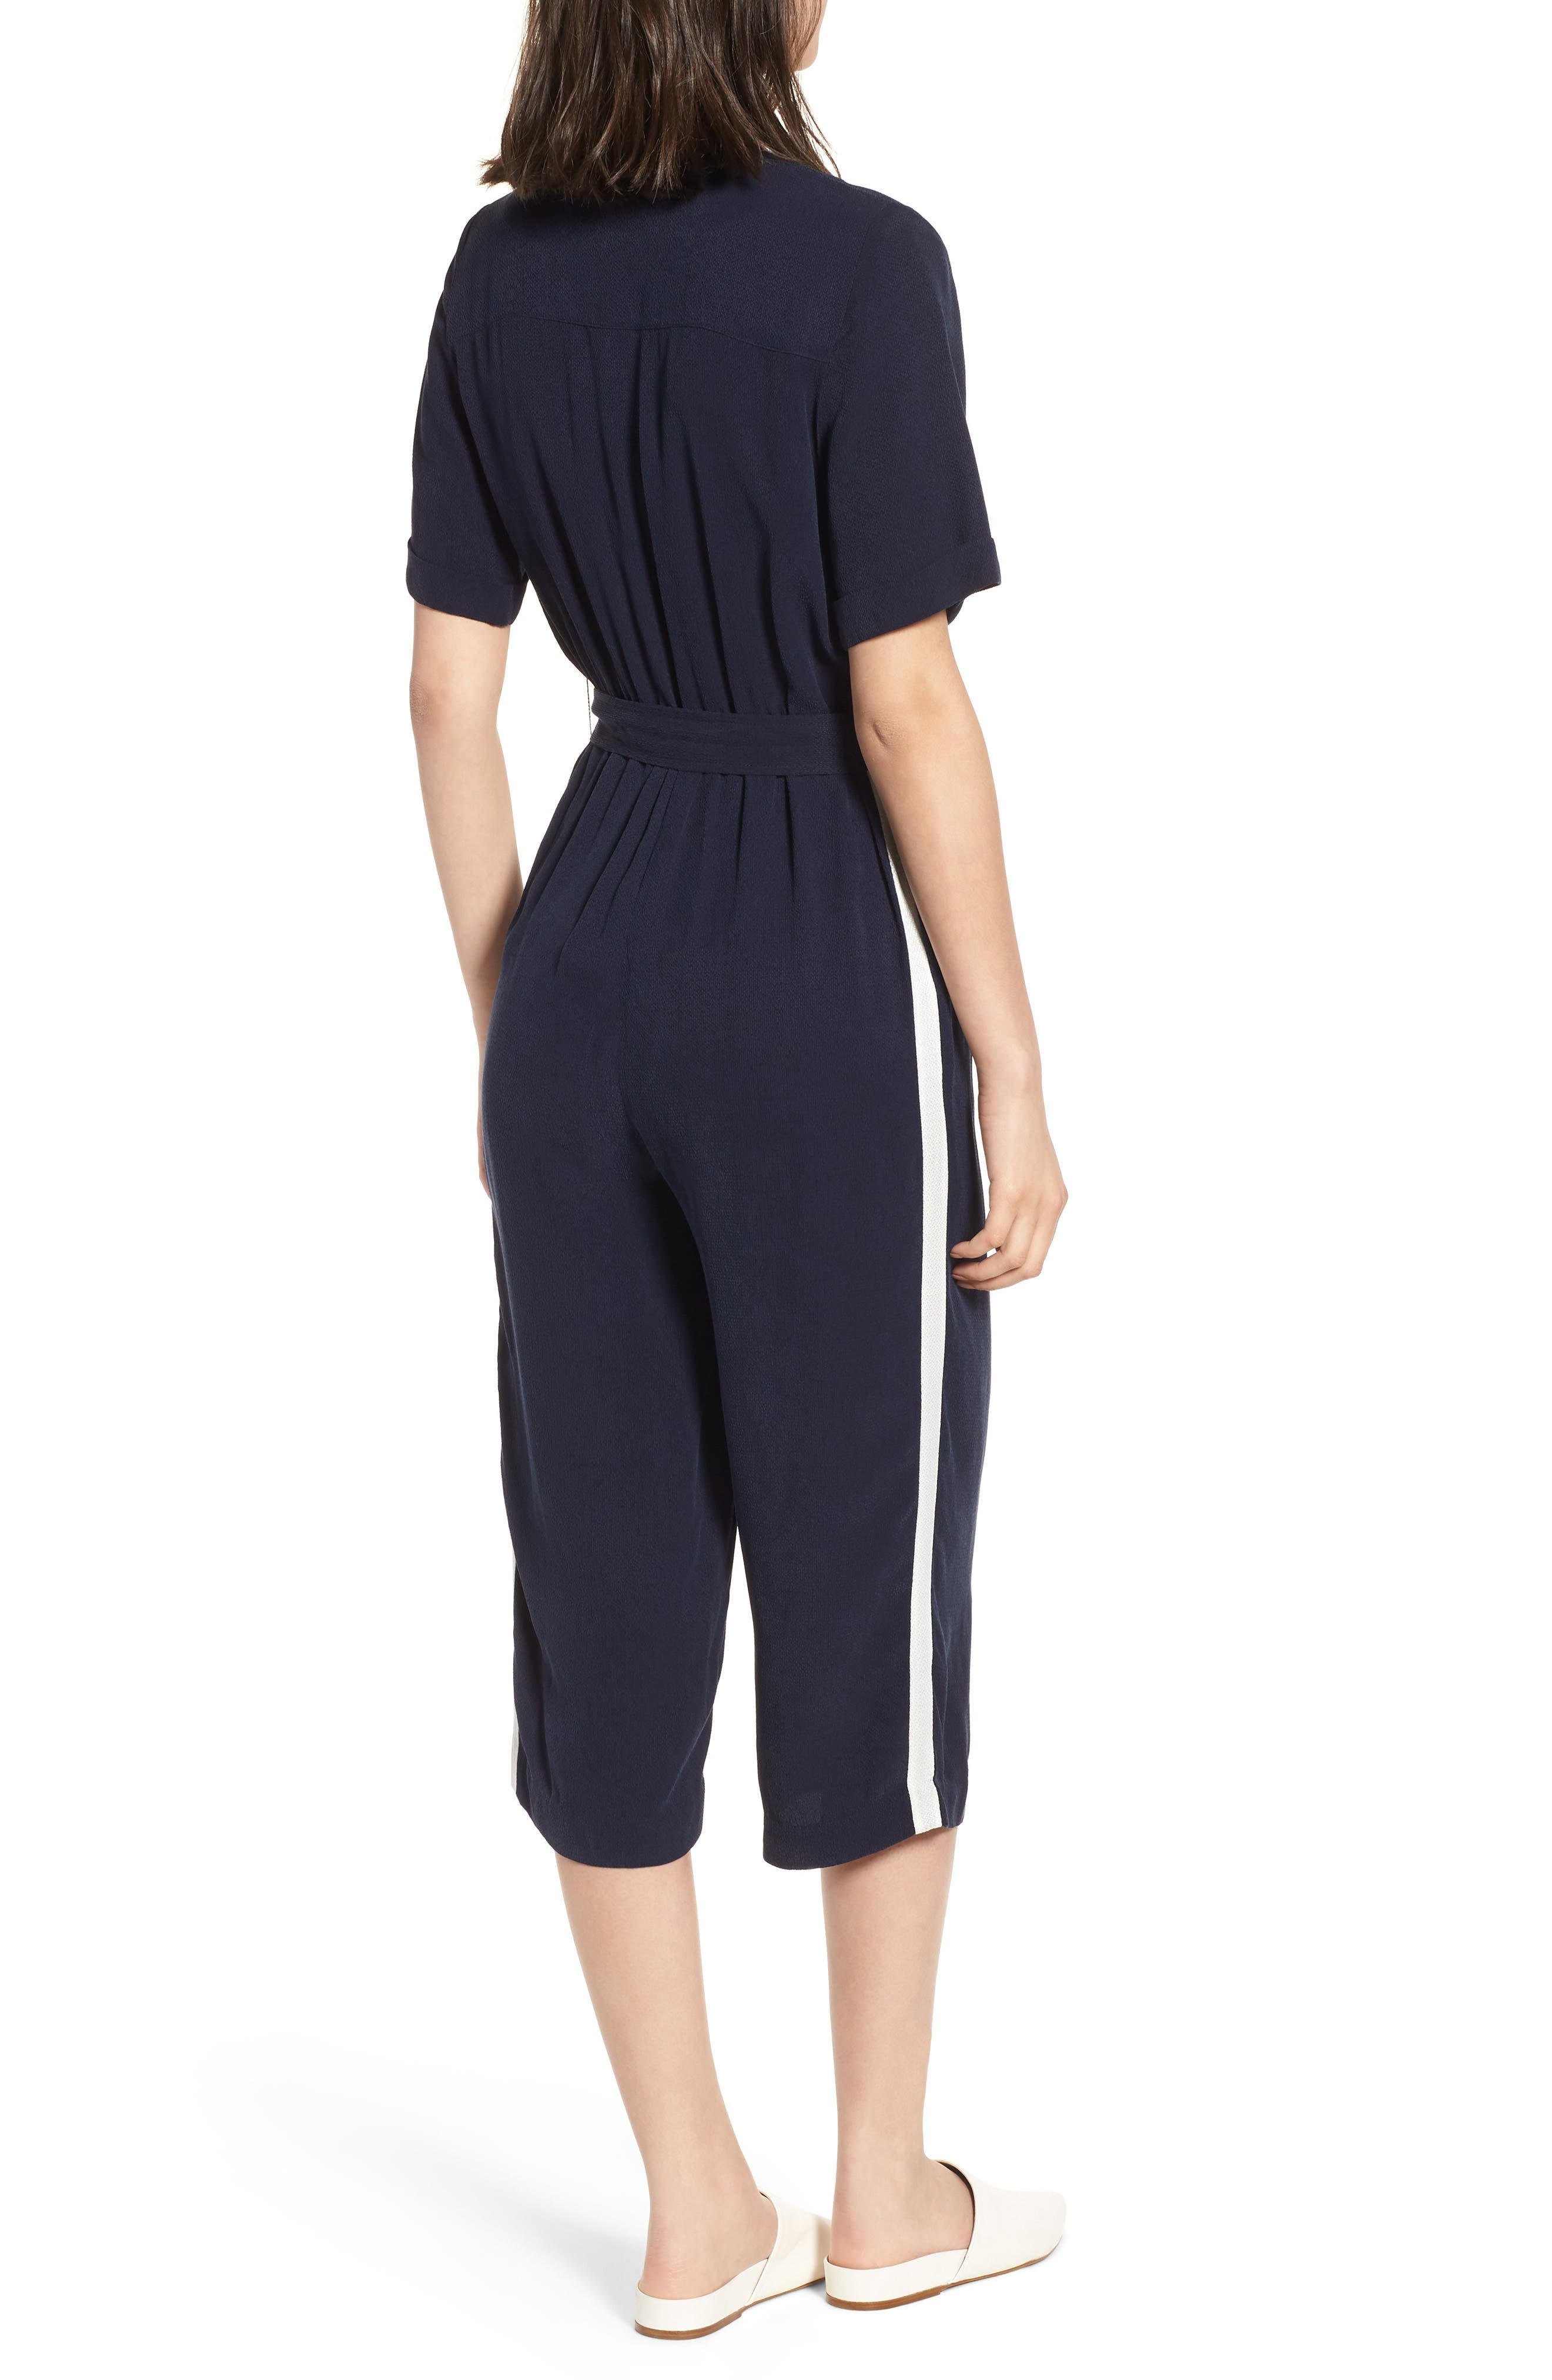 Downstairs Crop Jumpsuit,                             Alternate thumbnail 2, color,                             Navy